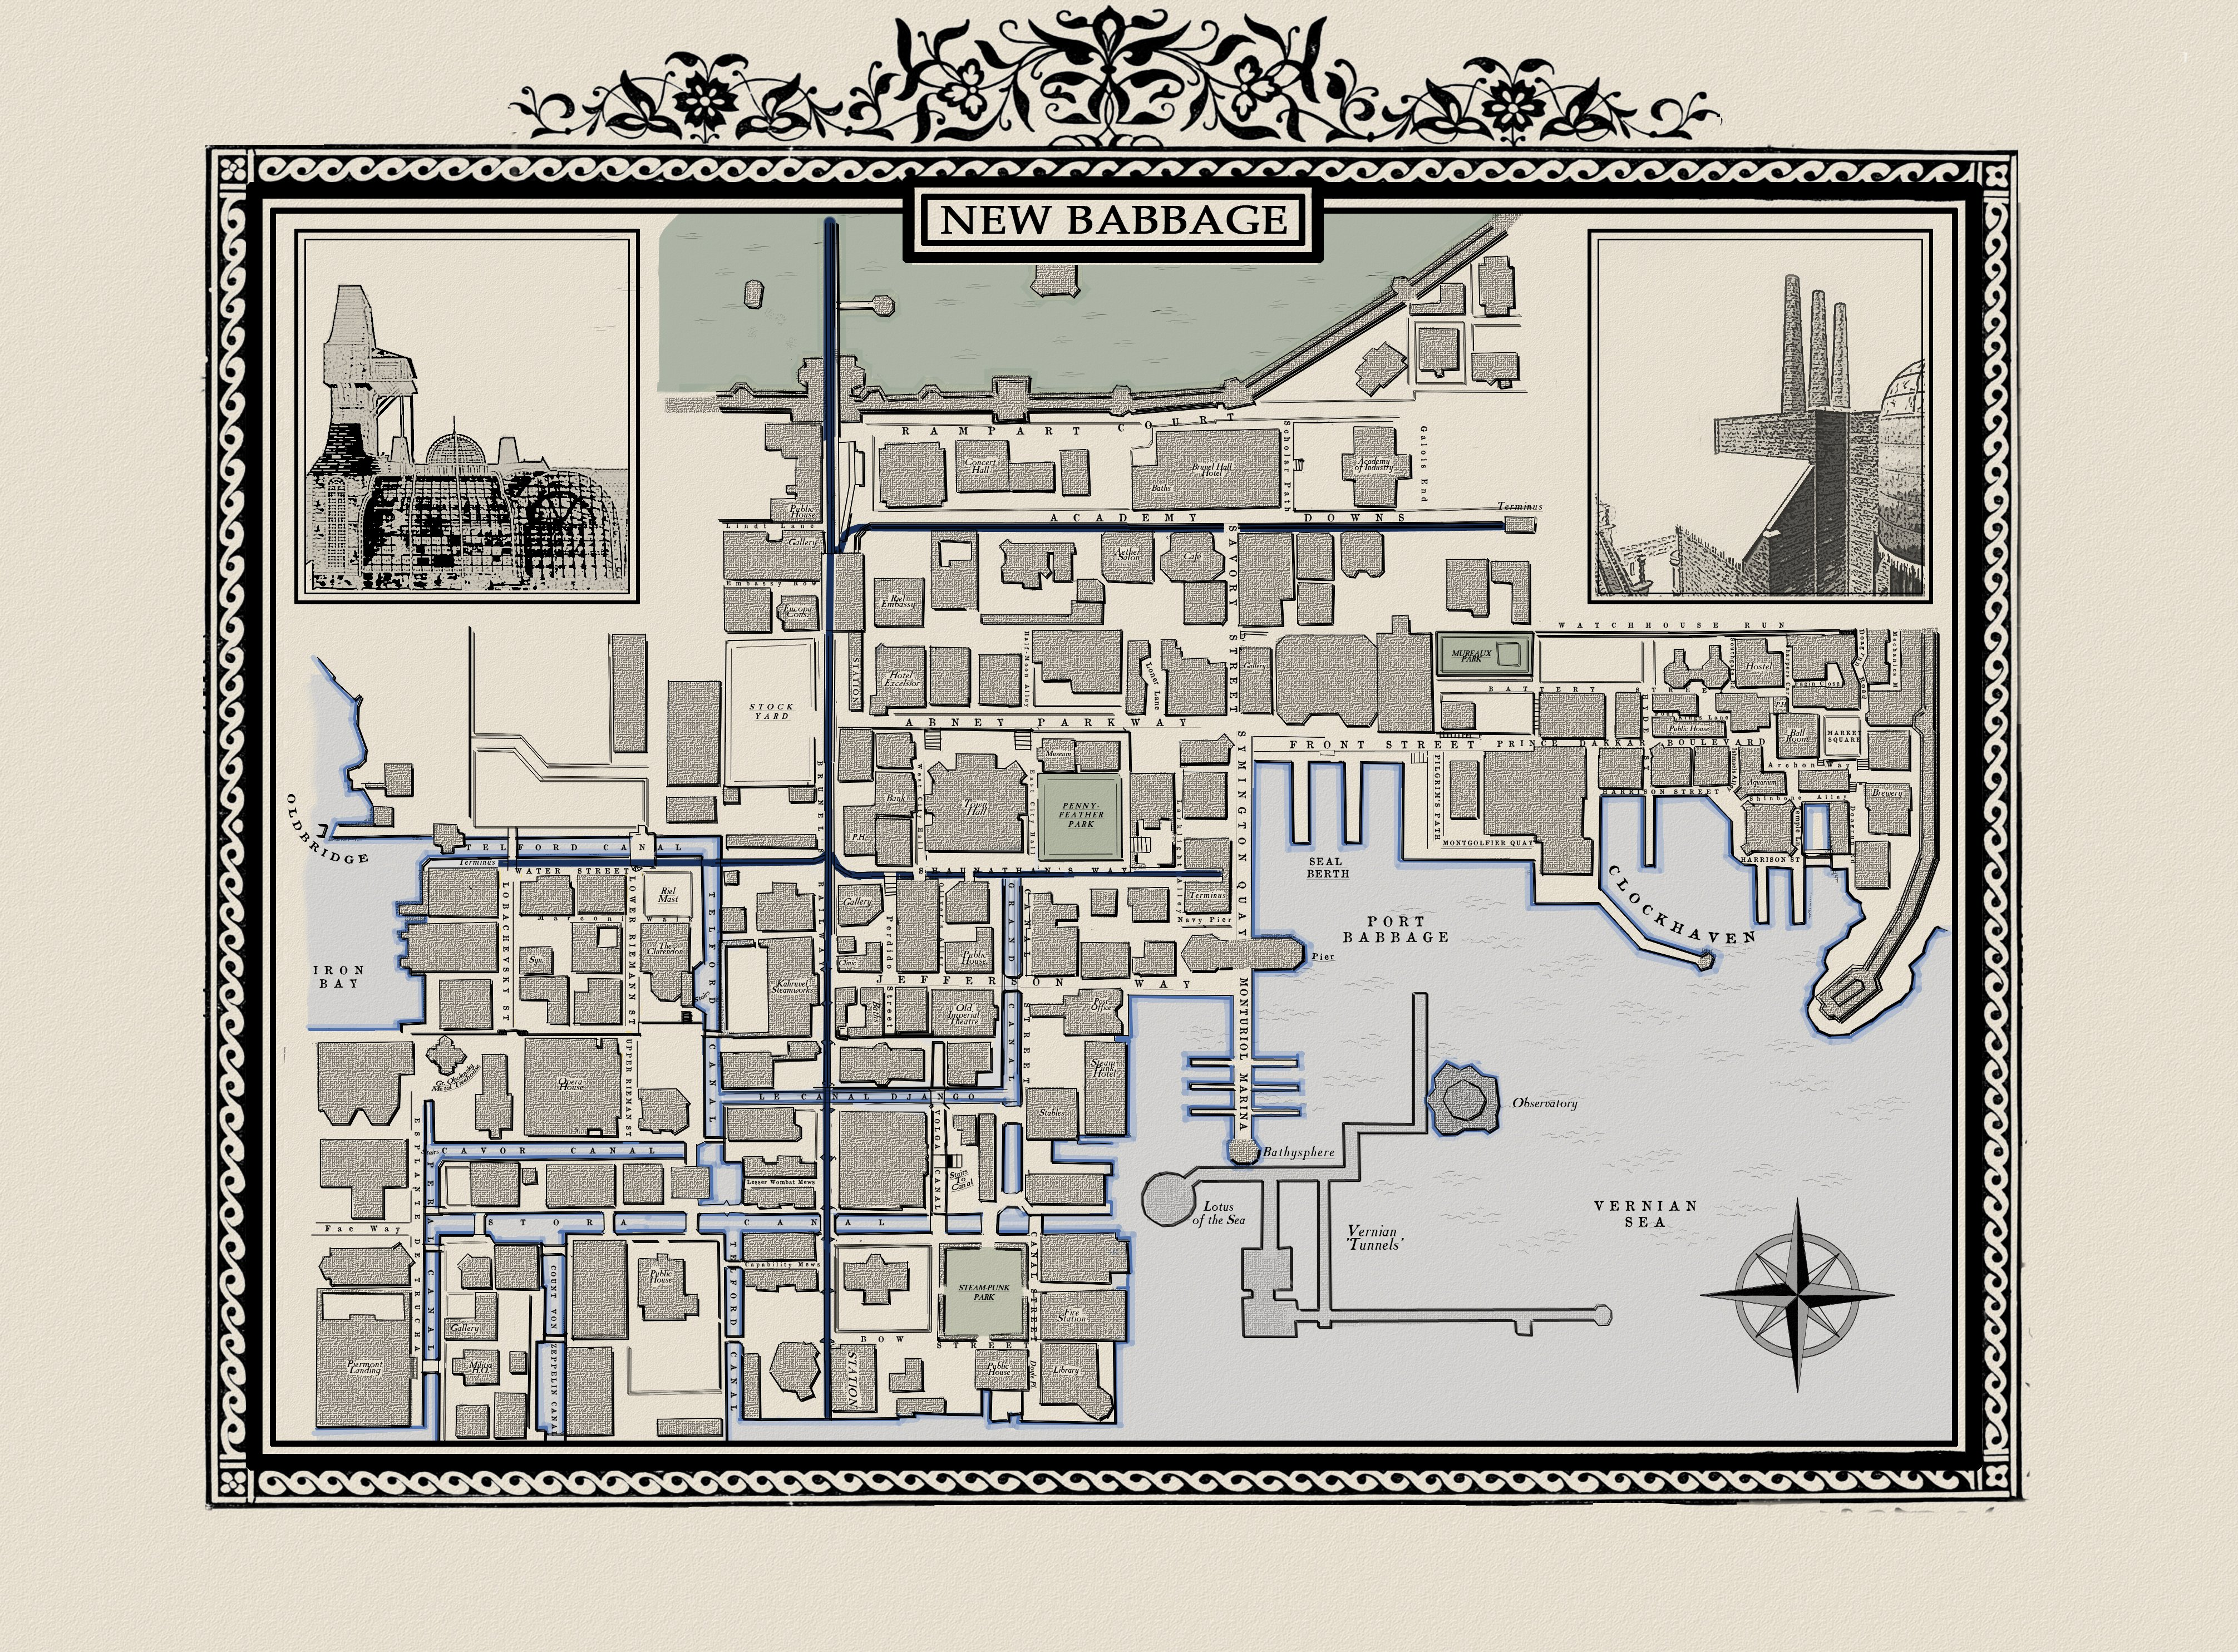 New Babbage Map (as of 7th Jan 2010)